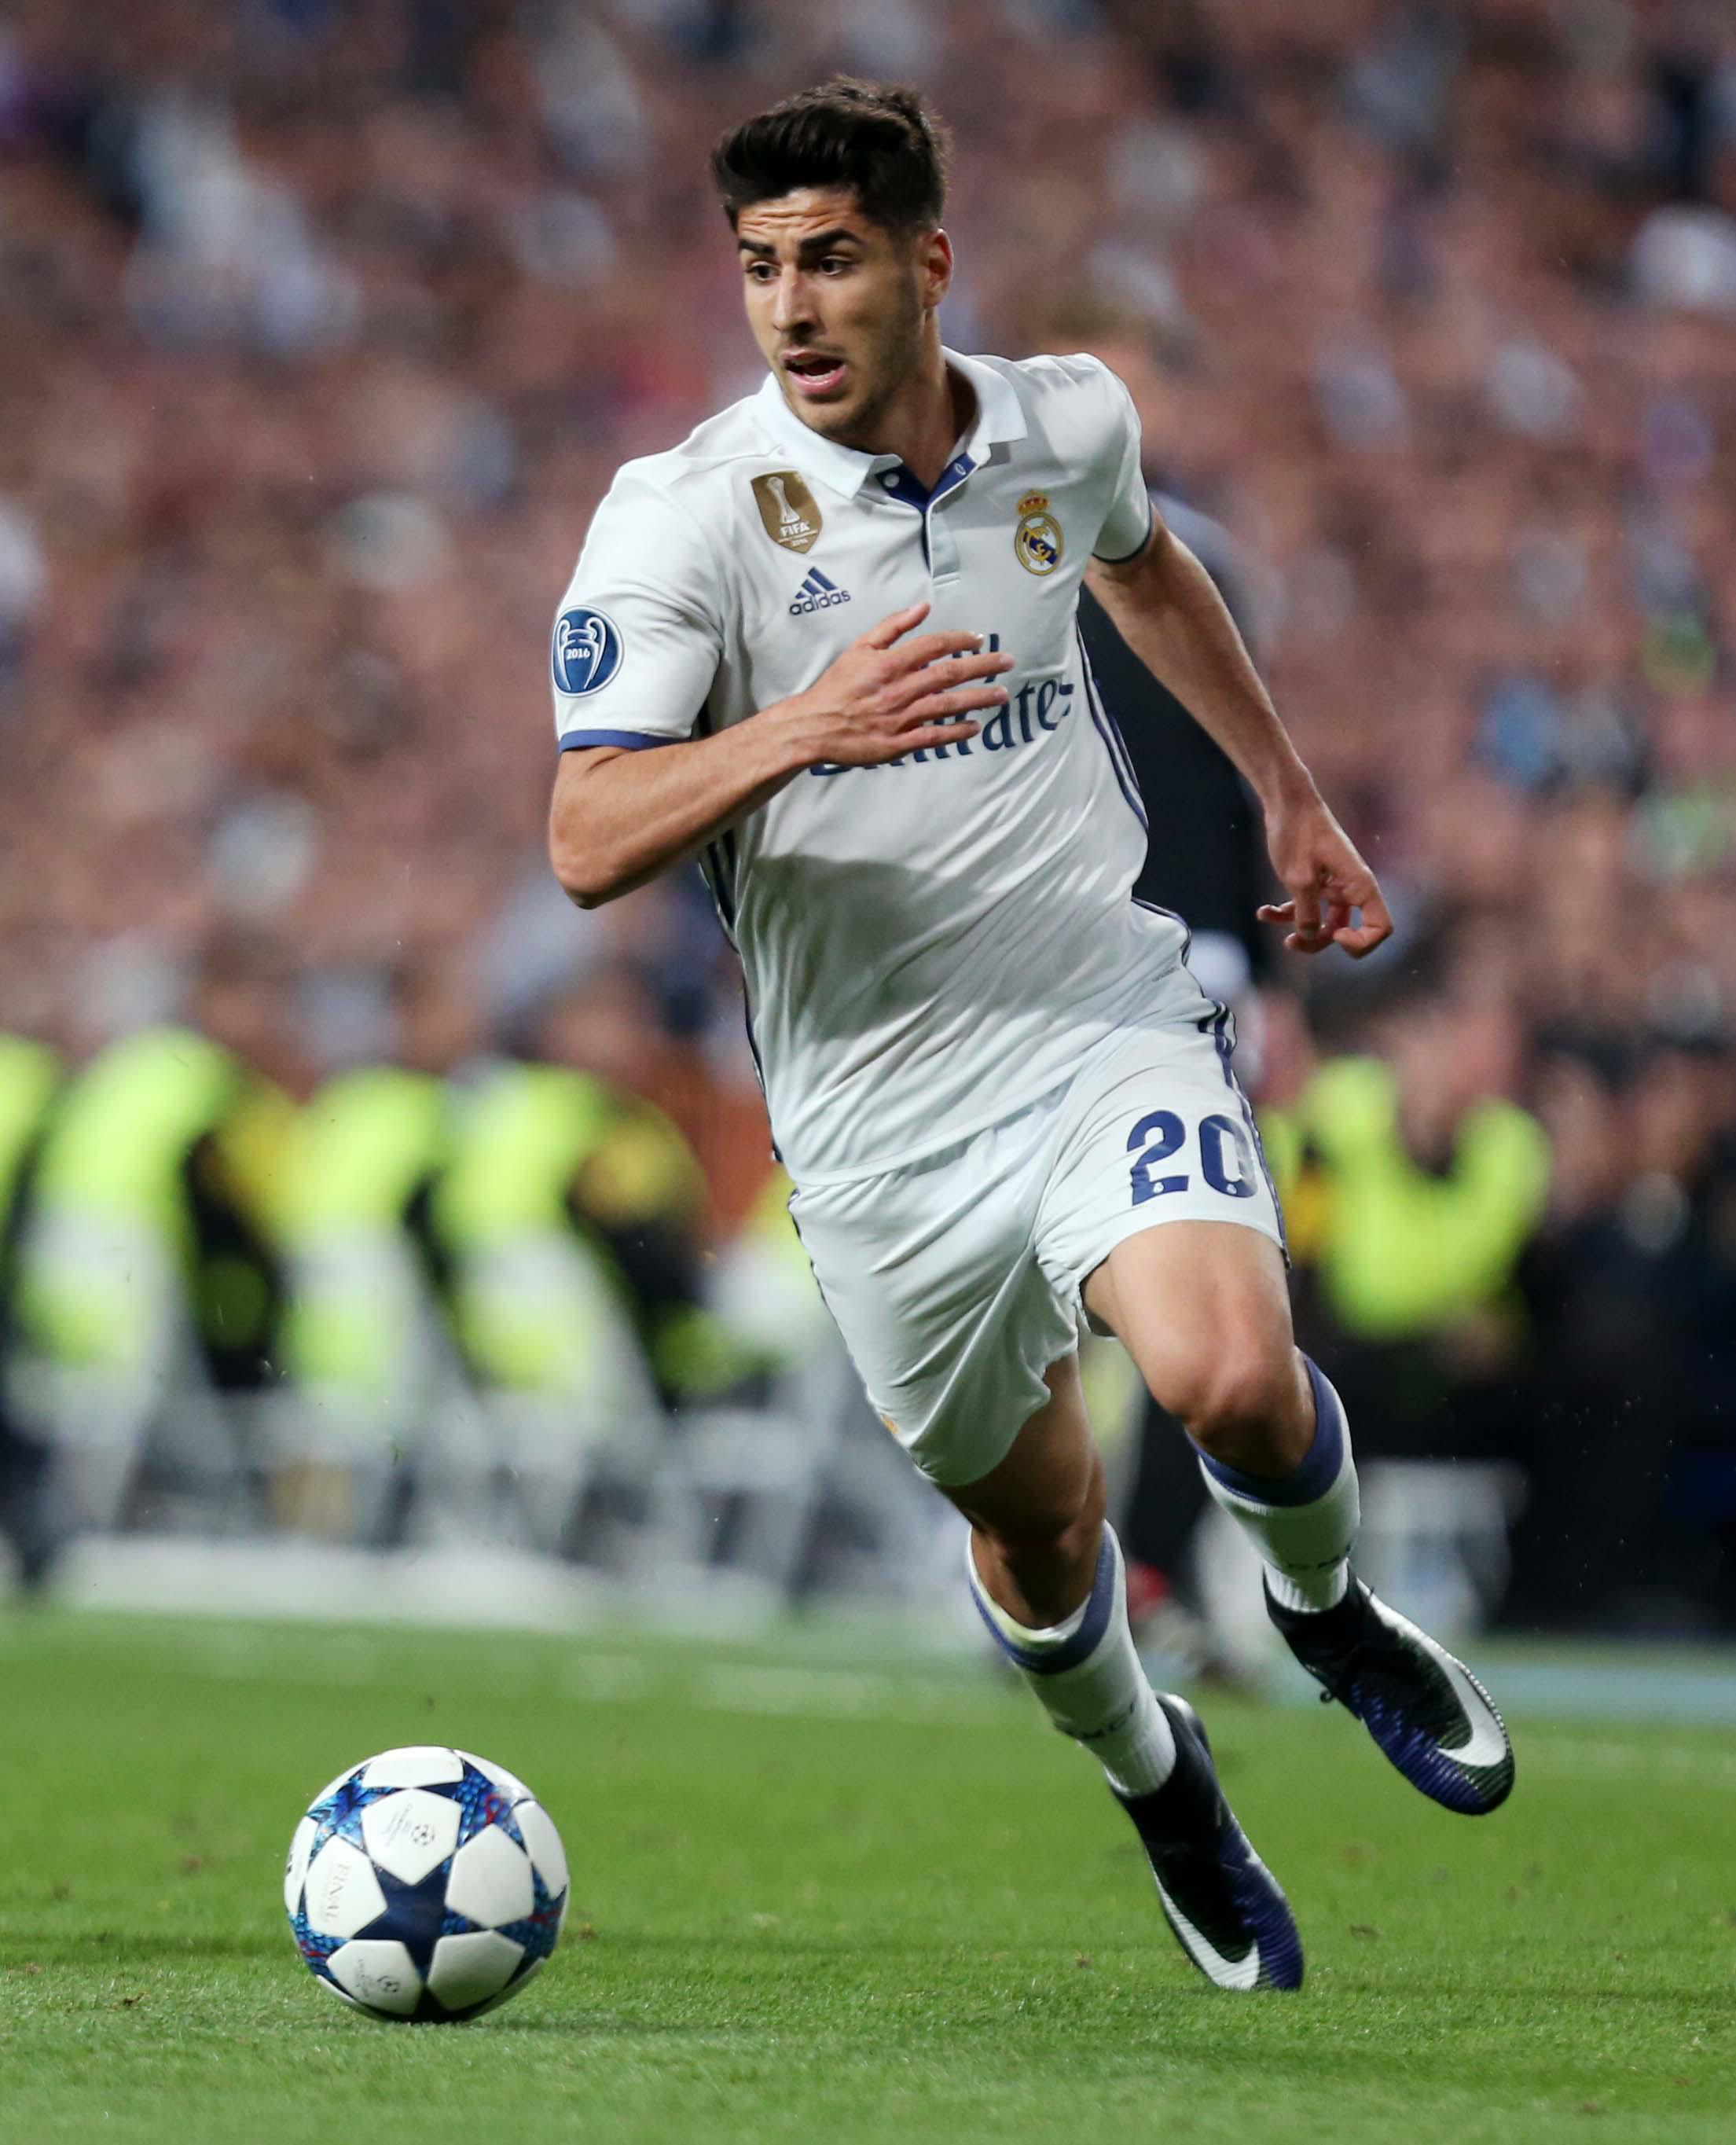 Image Result For Real Madrid Young Star